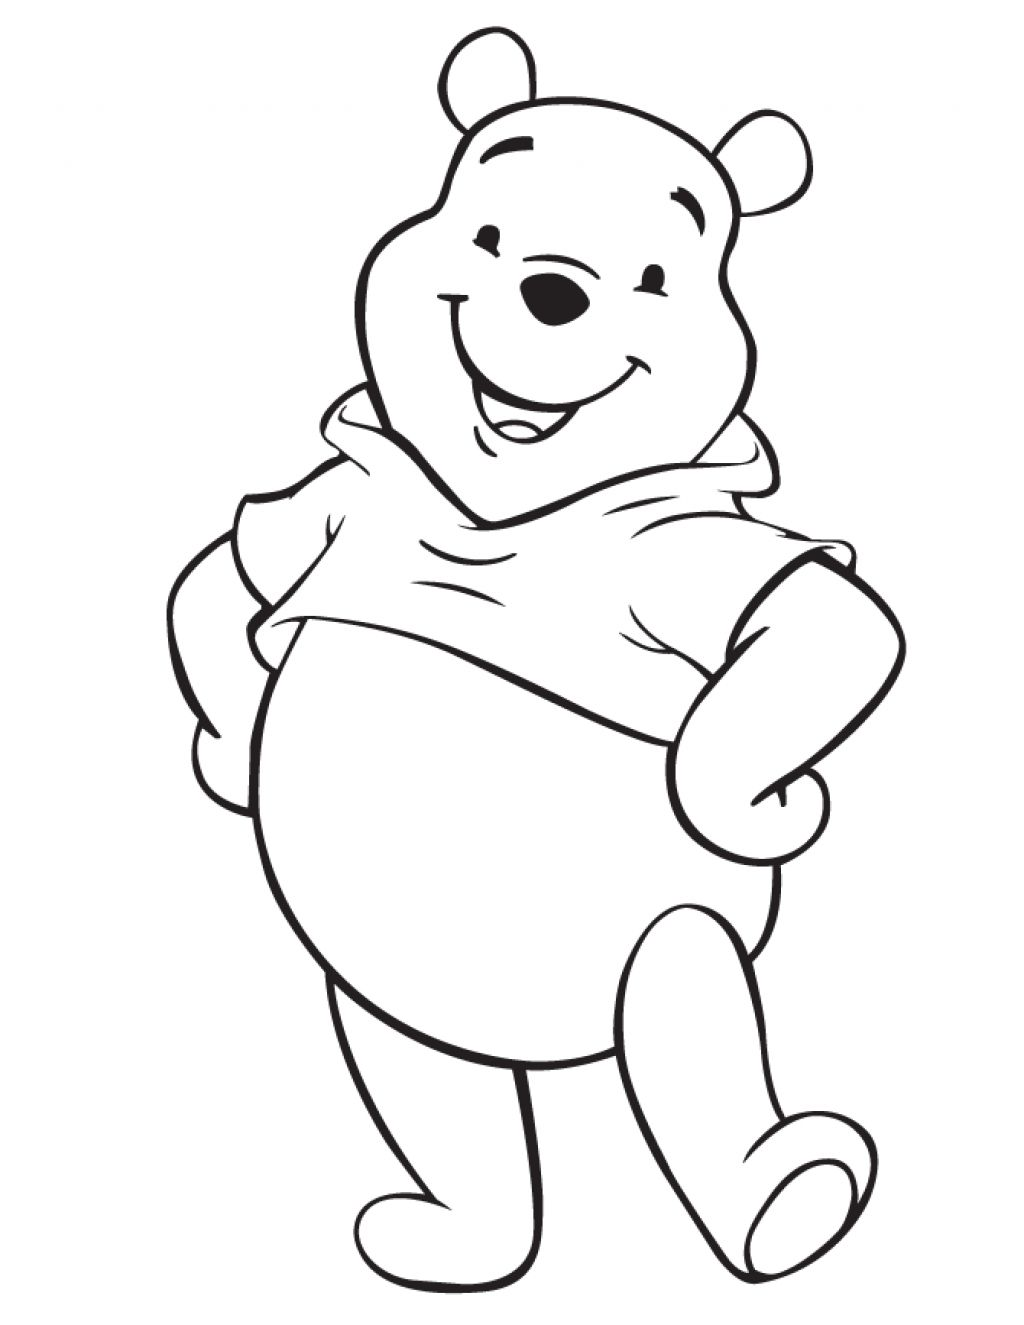 Disney Characters Coloring Pages Easy Baby Disney Cartoon